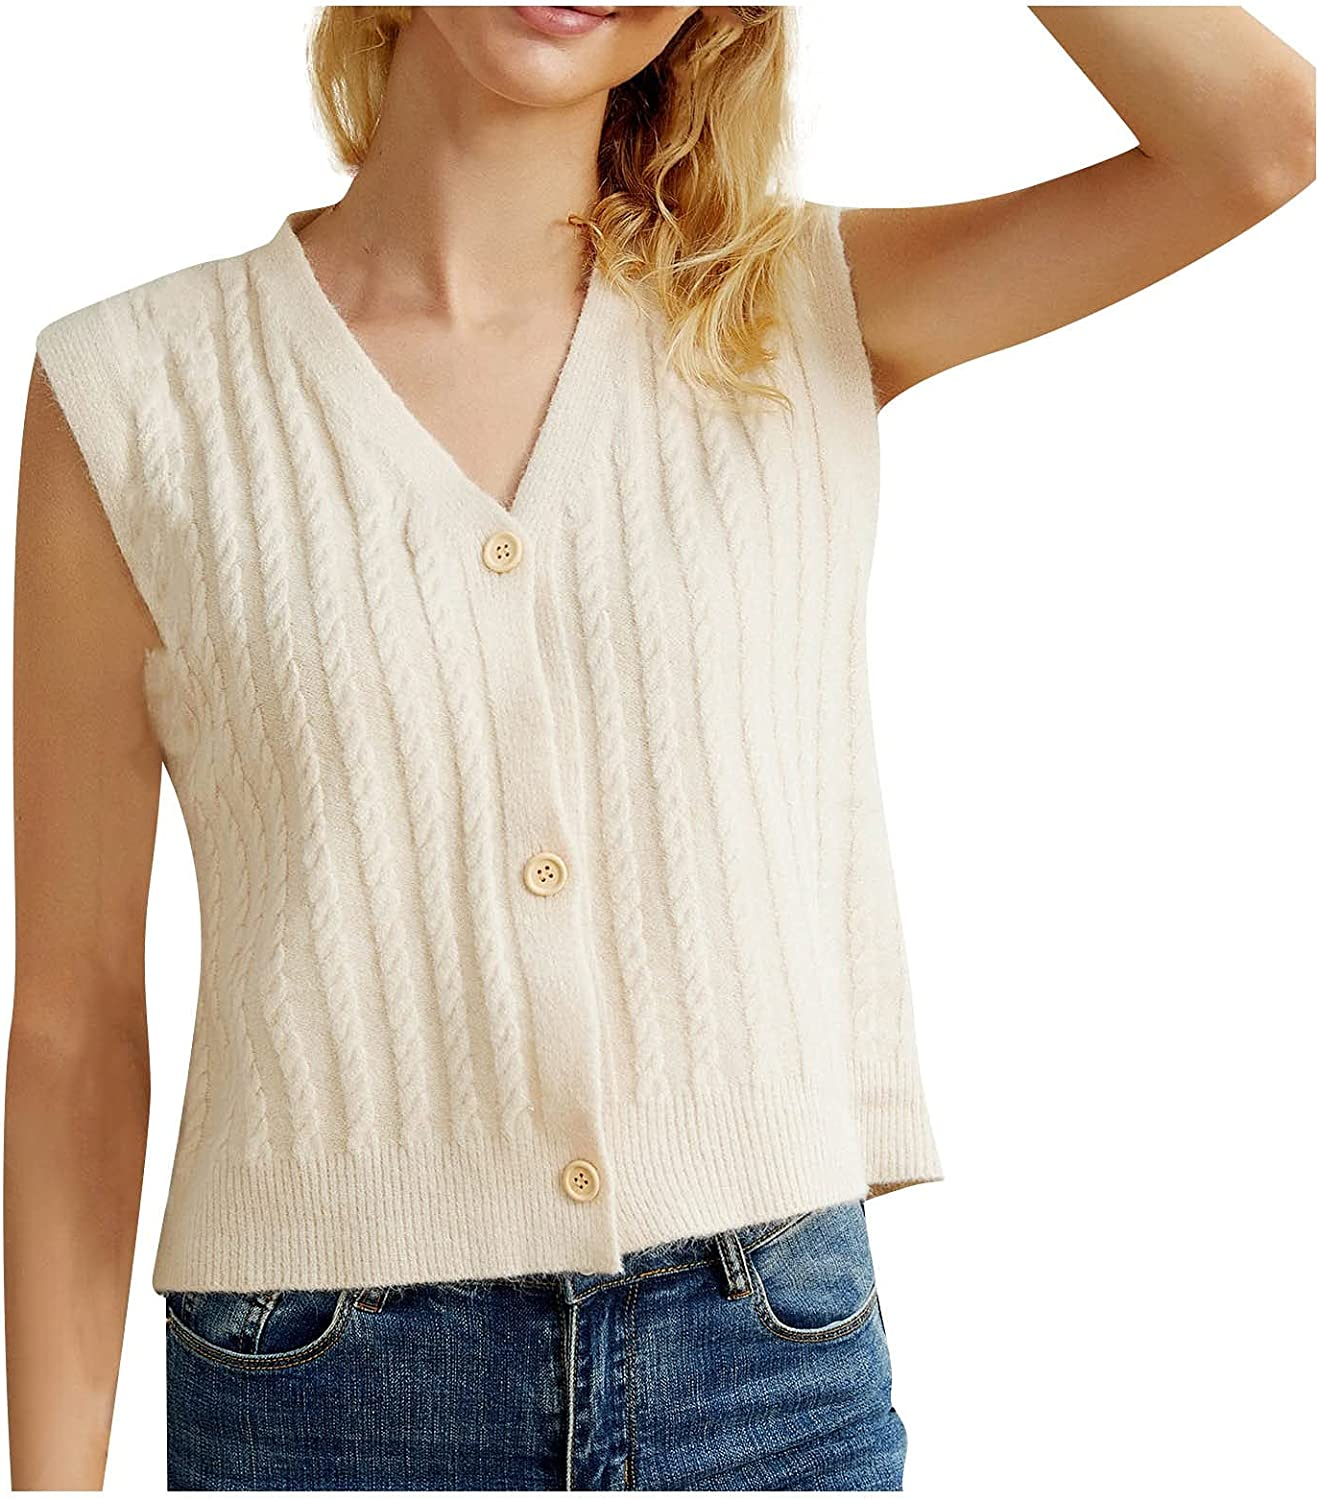 VonVonCo Womens Off The Shoulder Tops Sweater V-Neck Cardigan Sleeveless Vest Knitted Vest Blouses Outer Sweater Tops